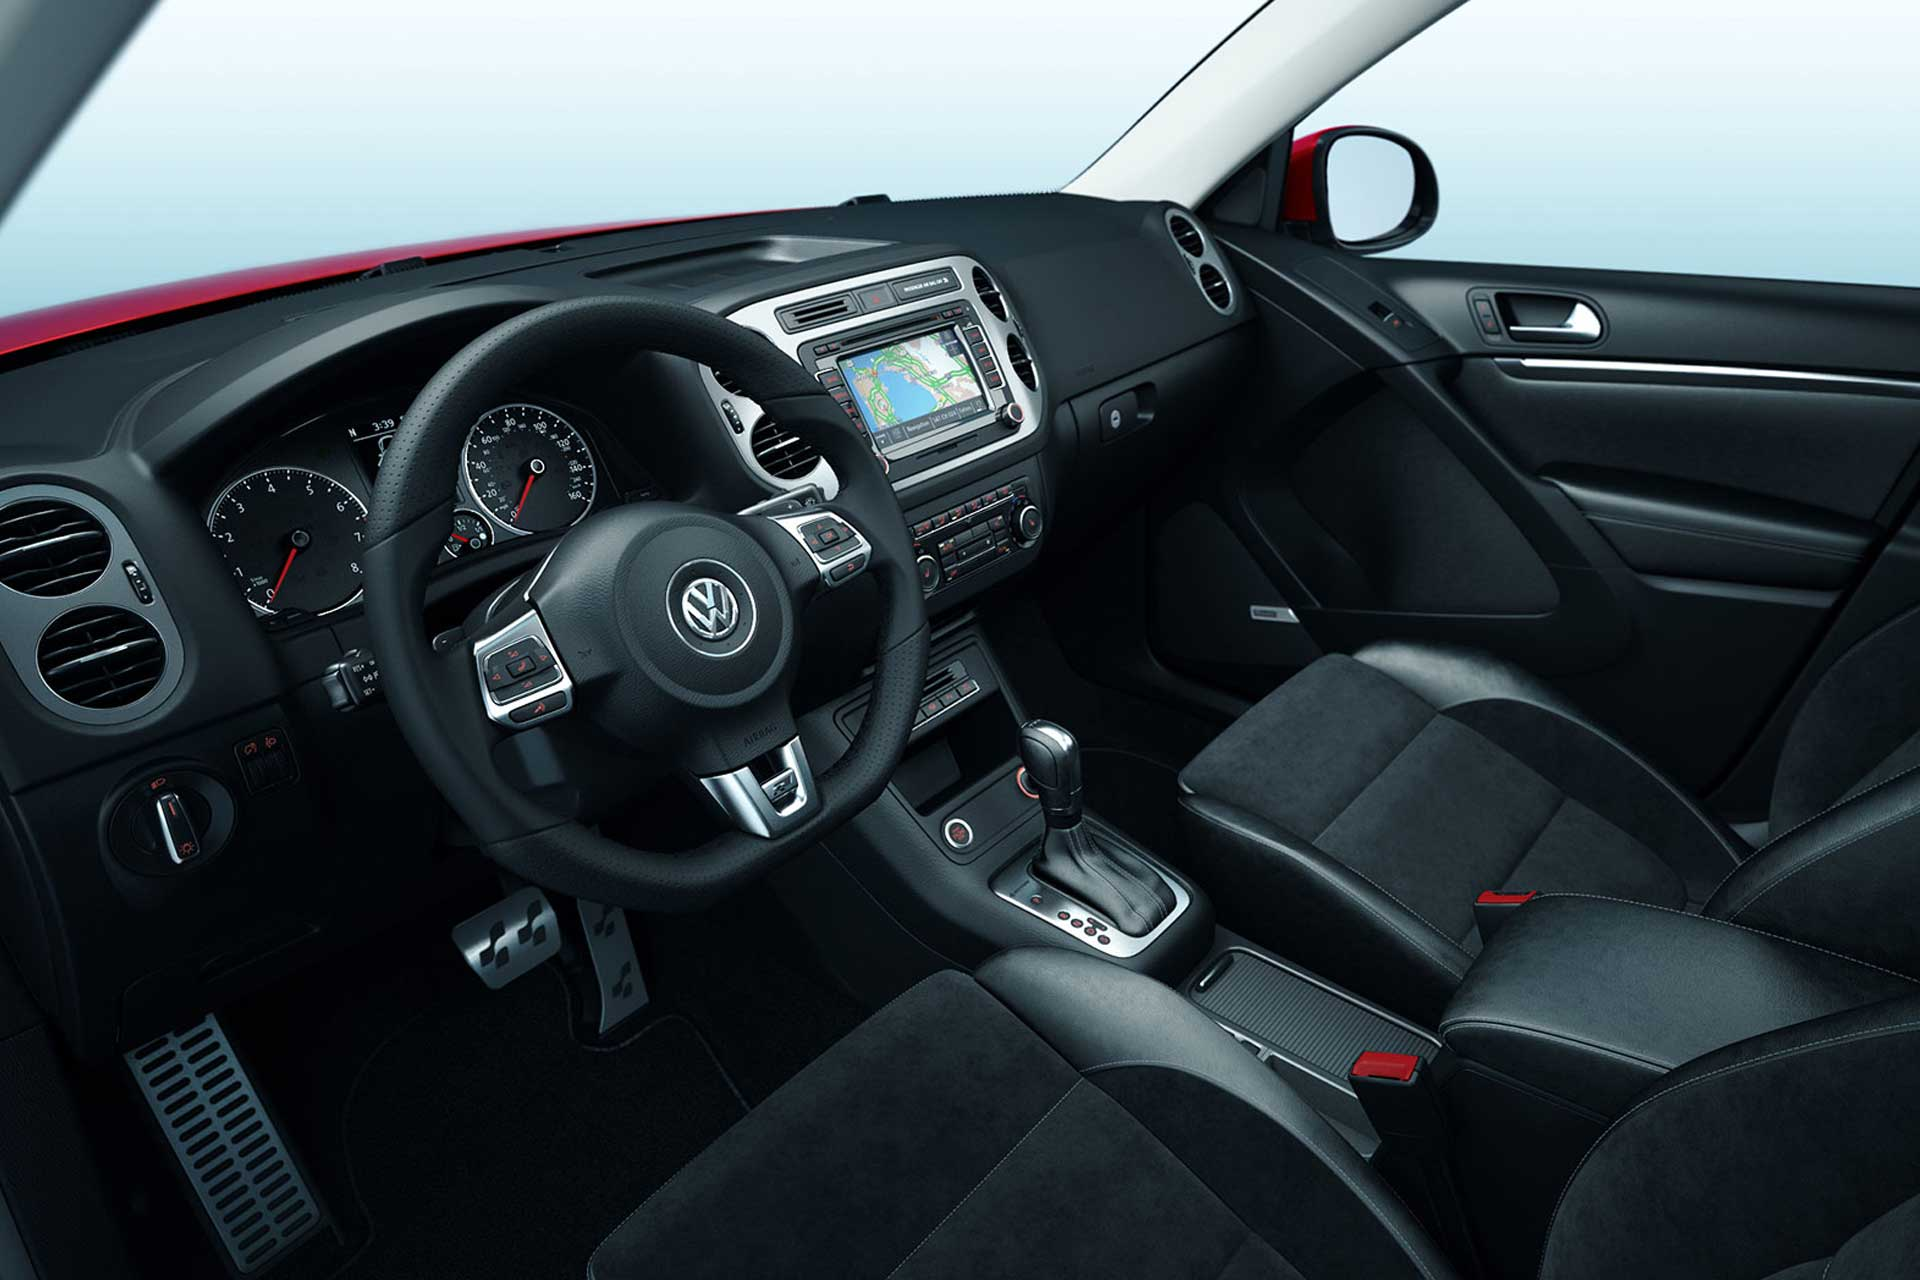 Interior view of VW Tiguan with black leather seats and a digital display